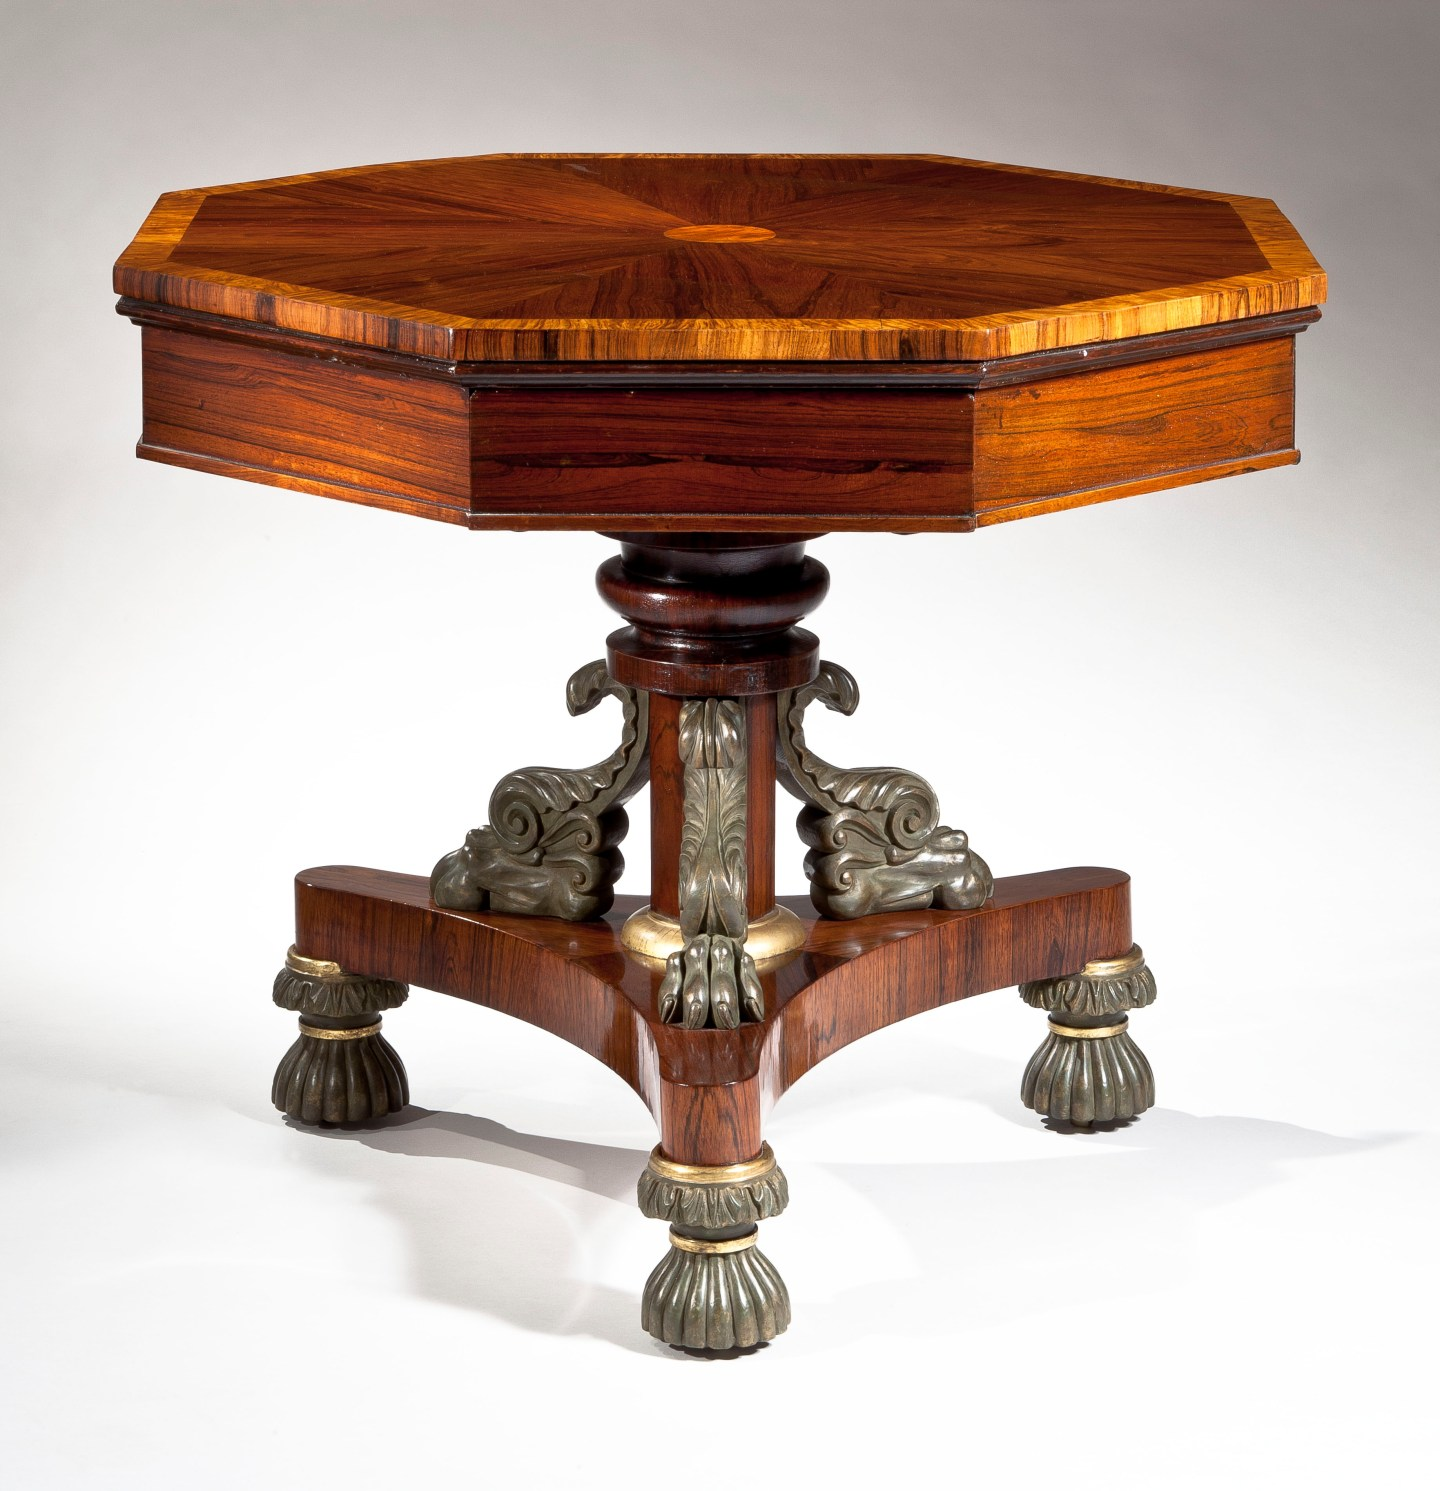 Cook and Parkin Drum Table